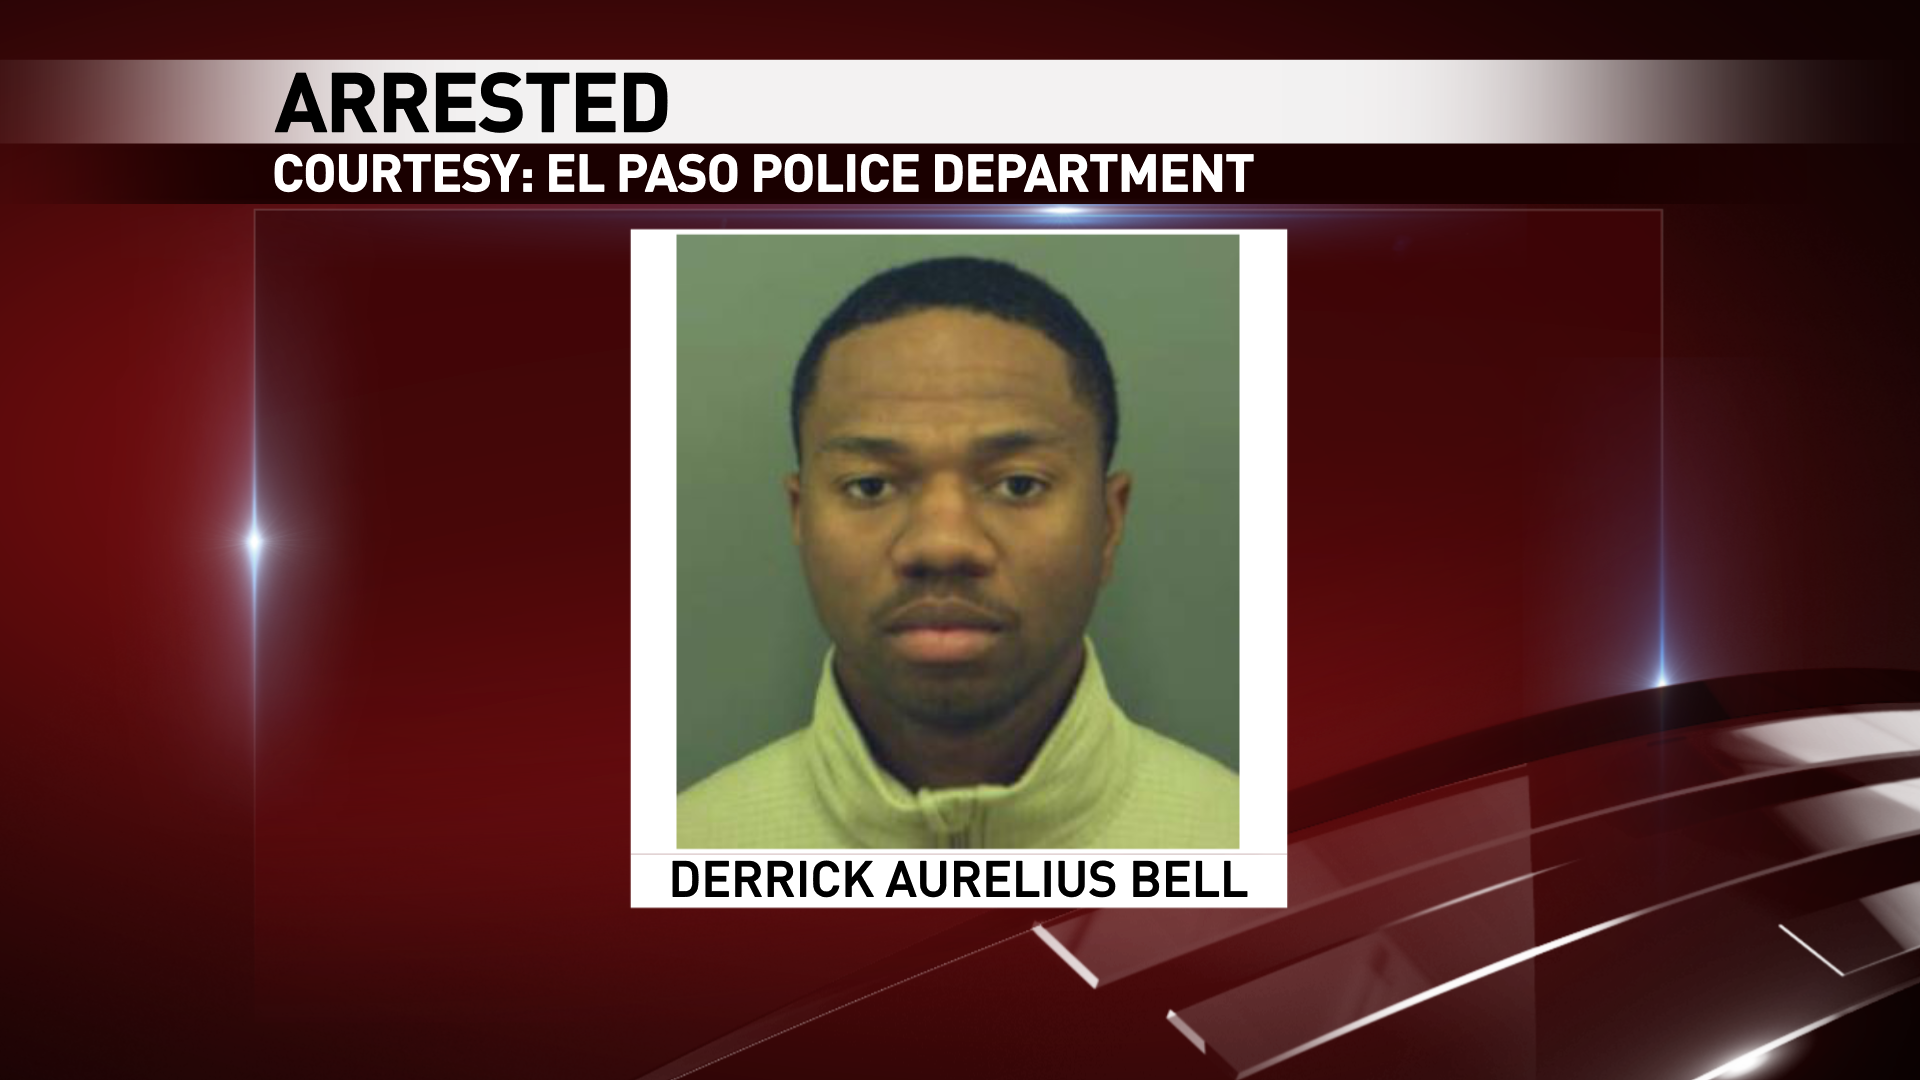 Derrick Aurelius Bell, 25, was arrested on a charge of insurance fraud.